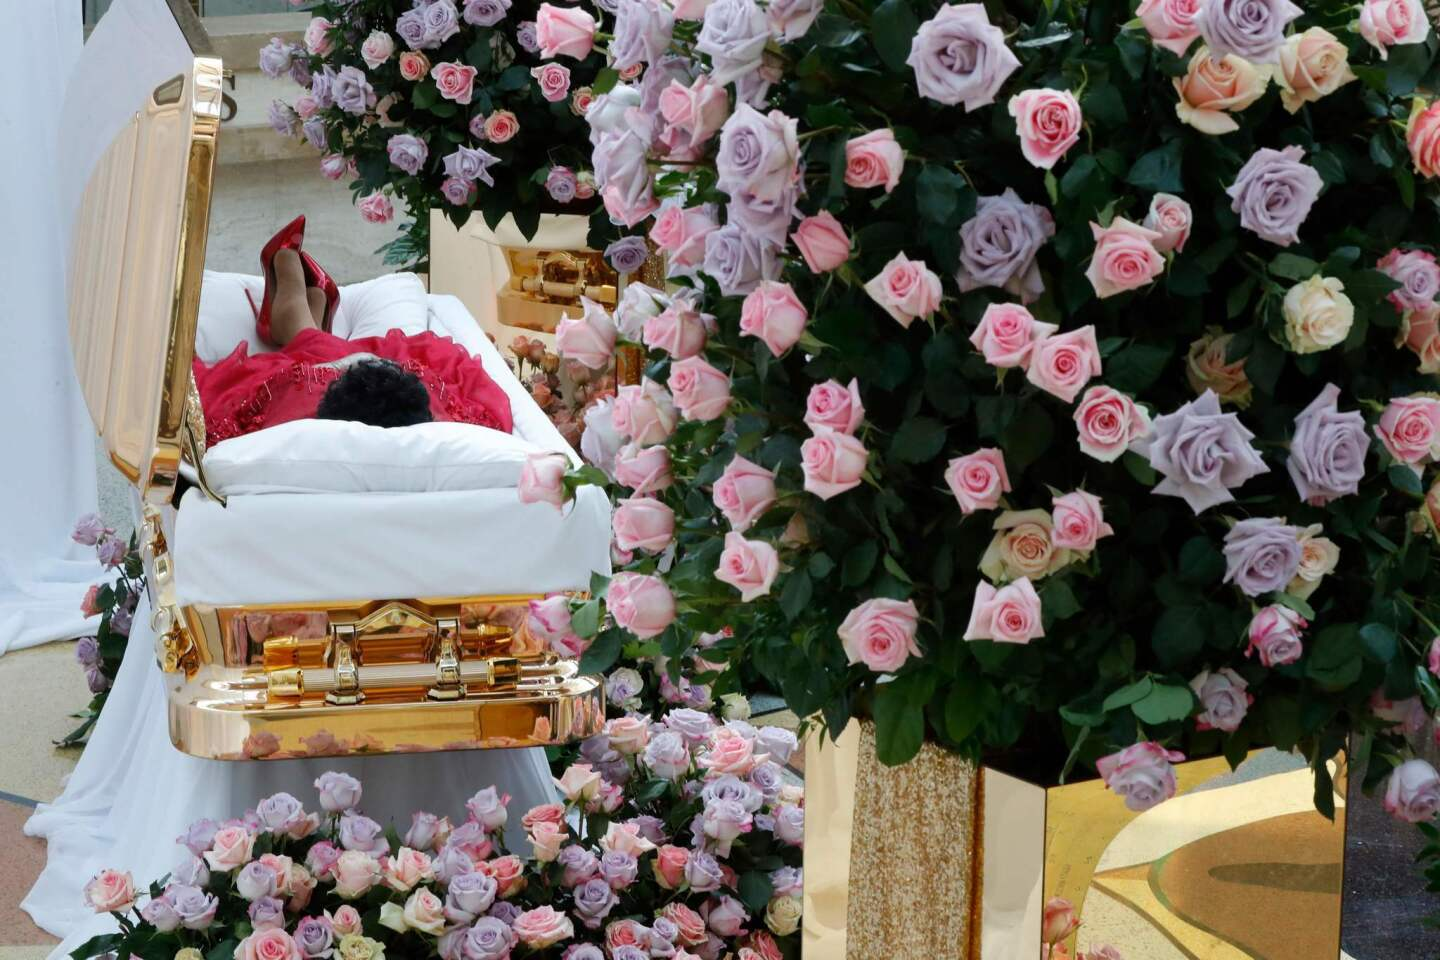 Mourners line up early for Aretha Franklin viewing